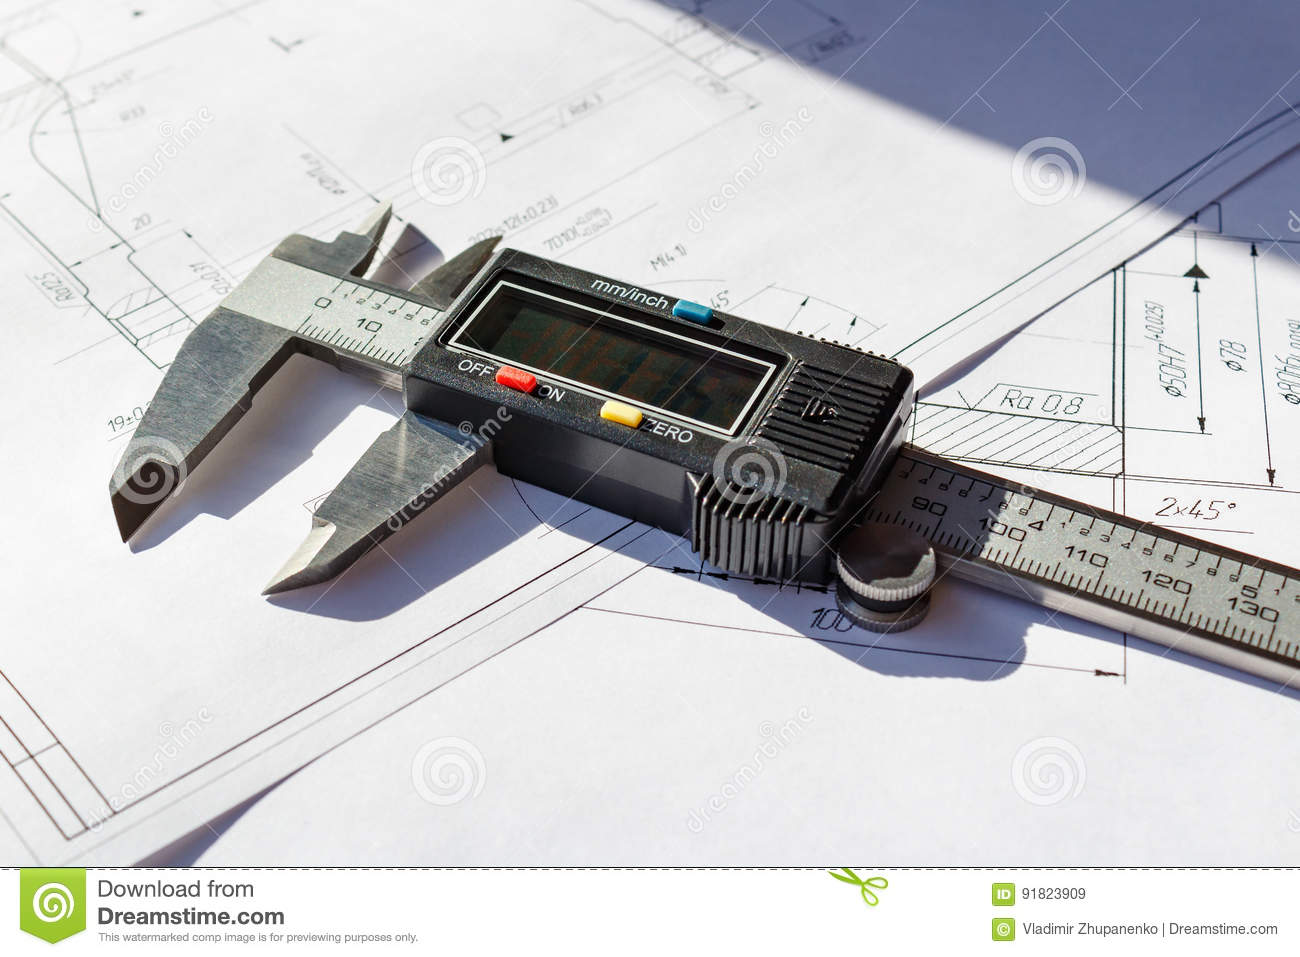 Electronic caliper lies on a engineering drawings